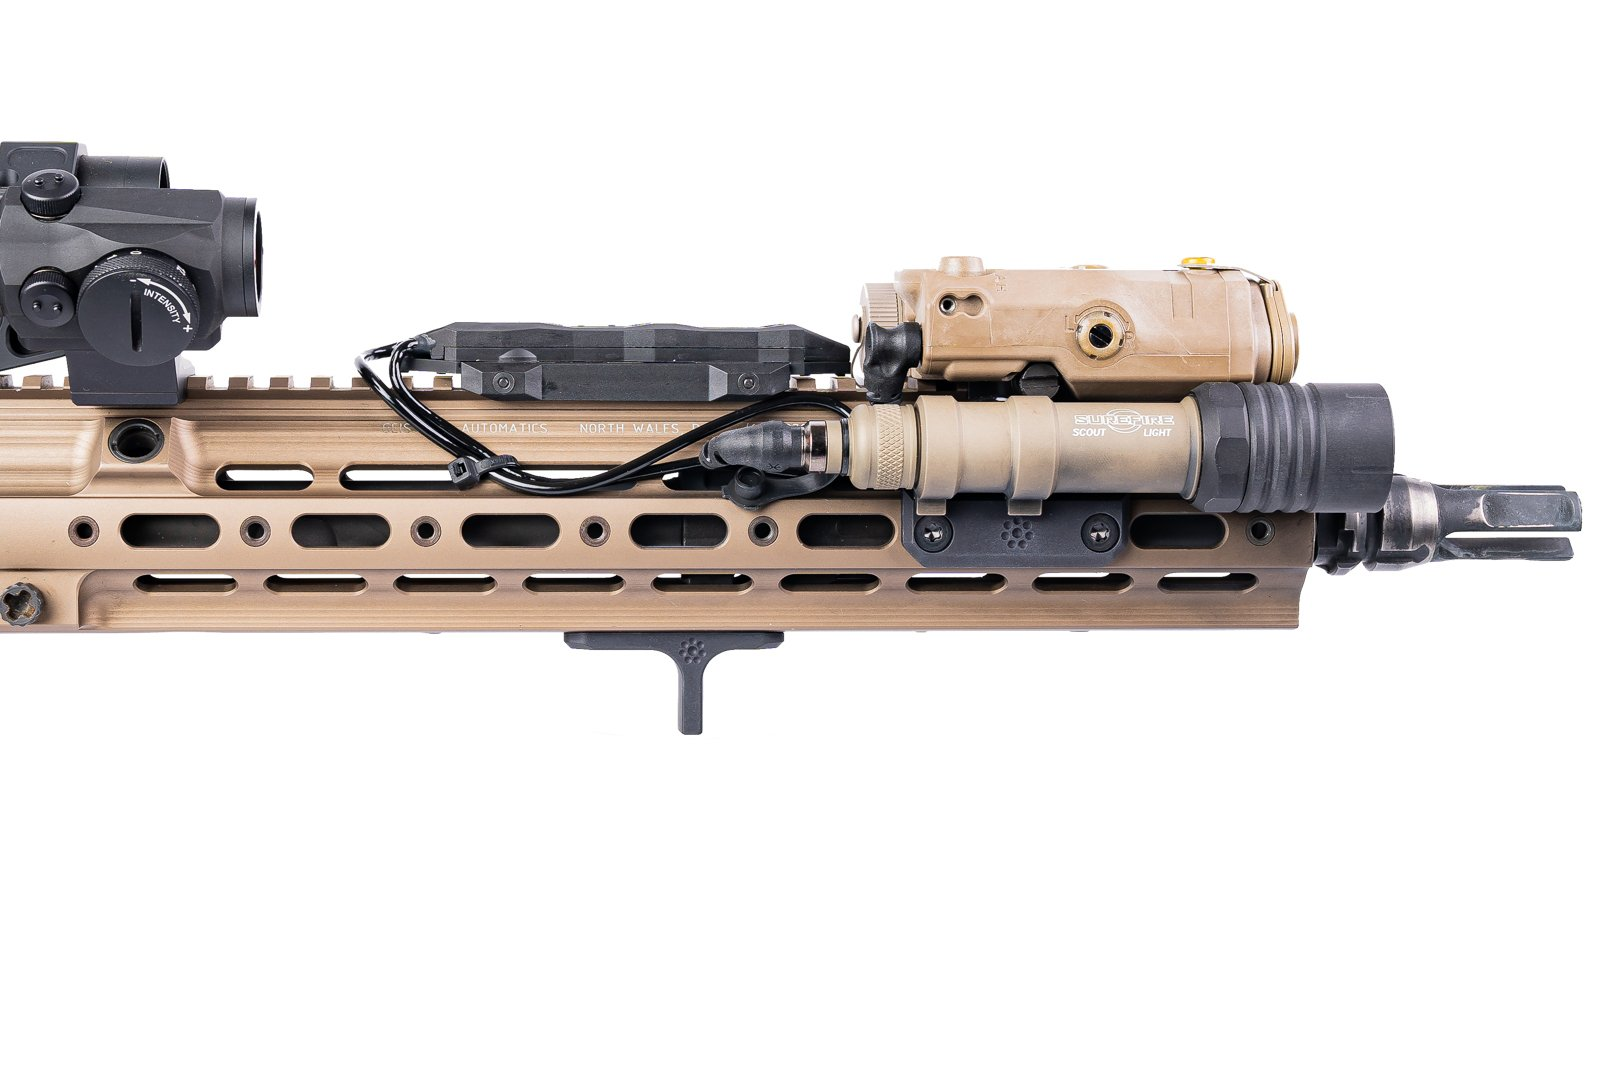 ARISAKA DEFENSE DEBUTS THE INDEXER FOR GEISSELE SMR 416 HANDGUARDS